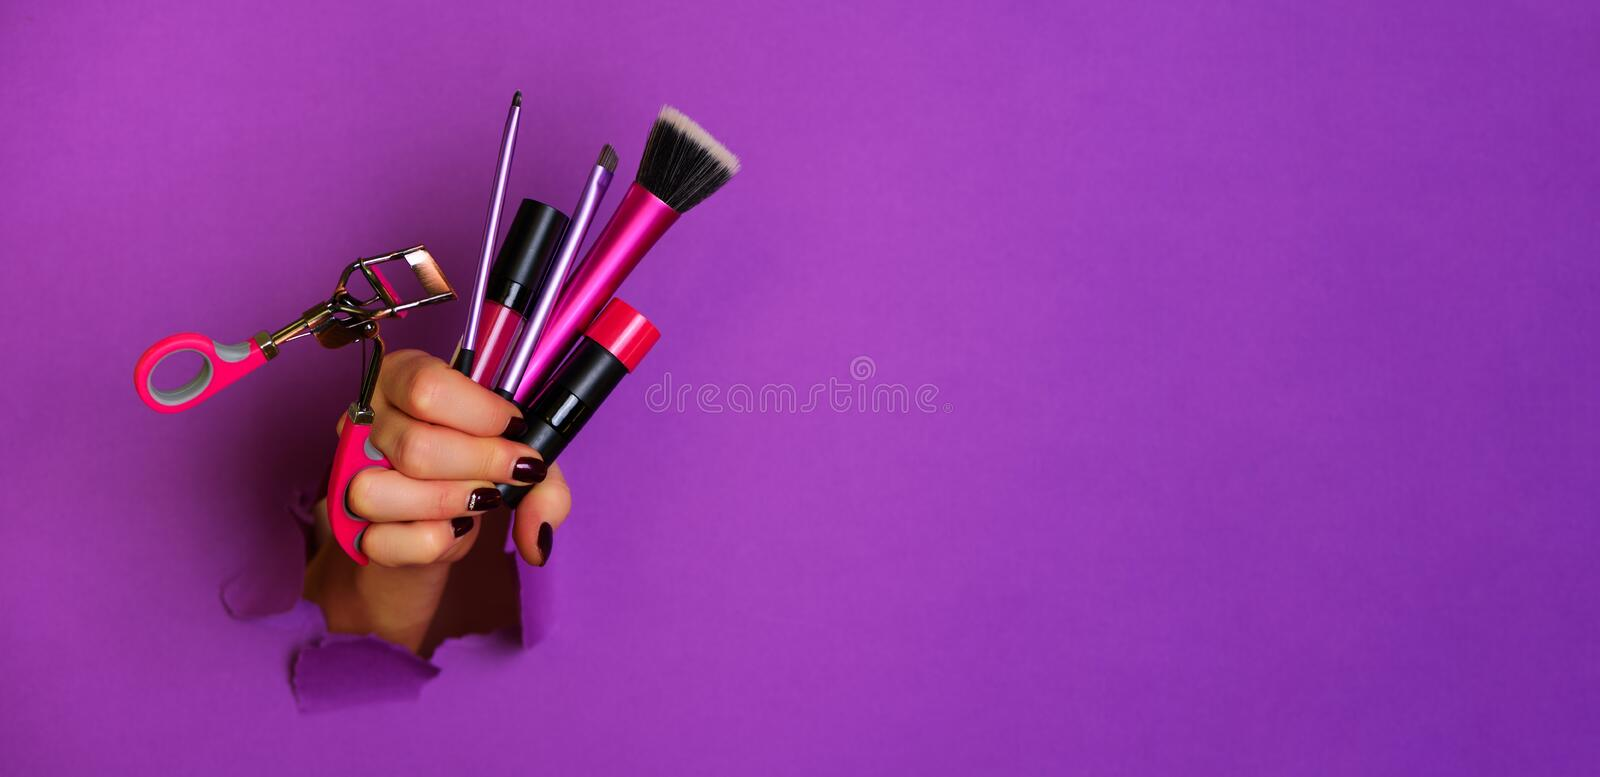 Woman hand with professional cosmetic tools for make up: brushes, mascara, lipstick, eyelash curler on violet background. Beauty royalty free stock images